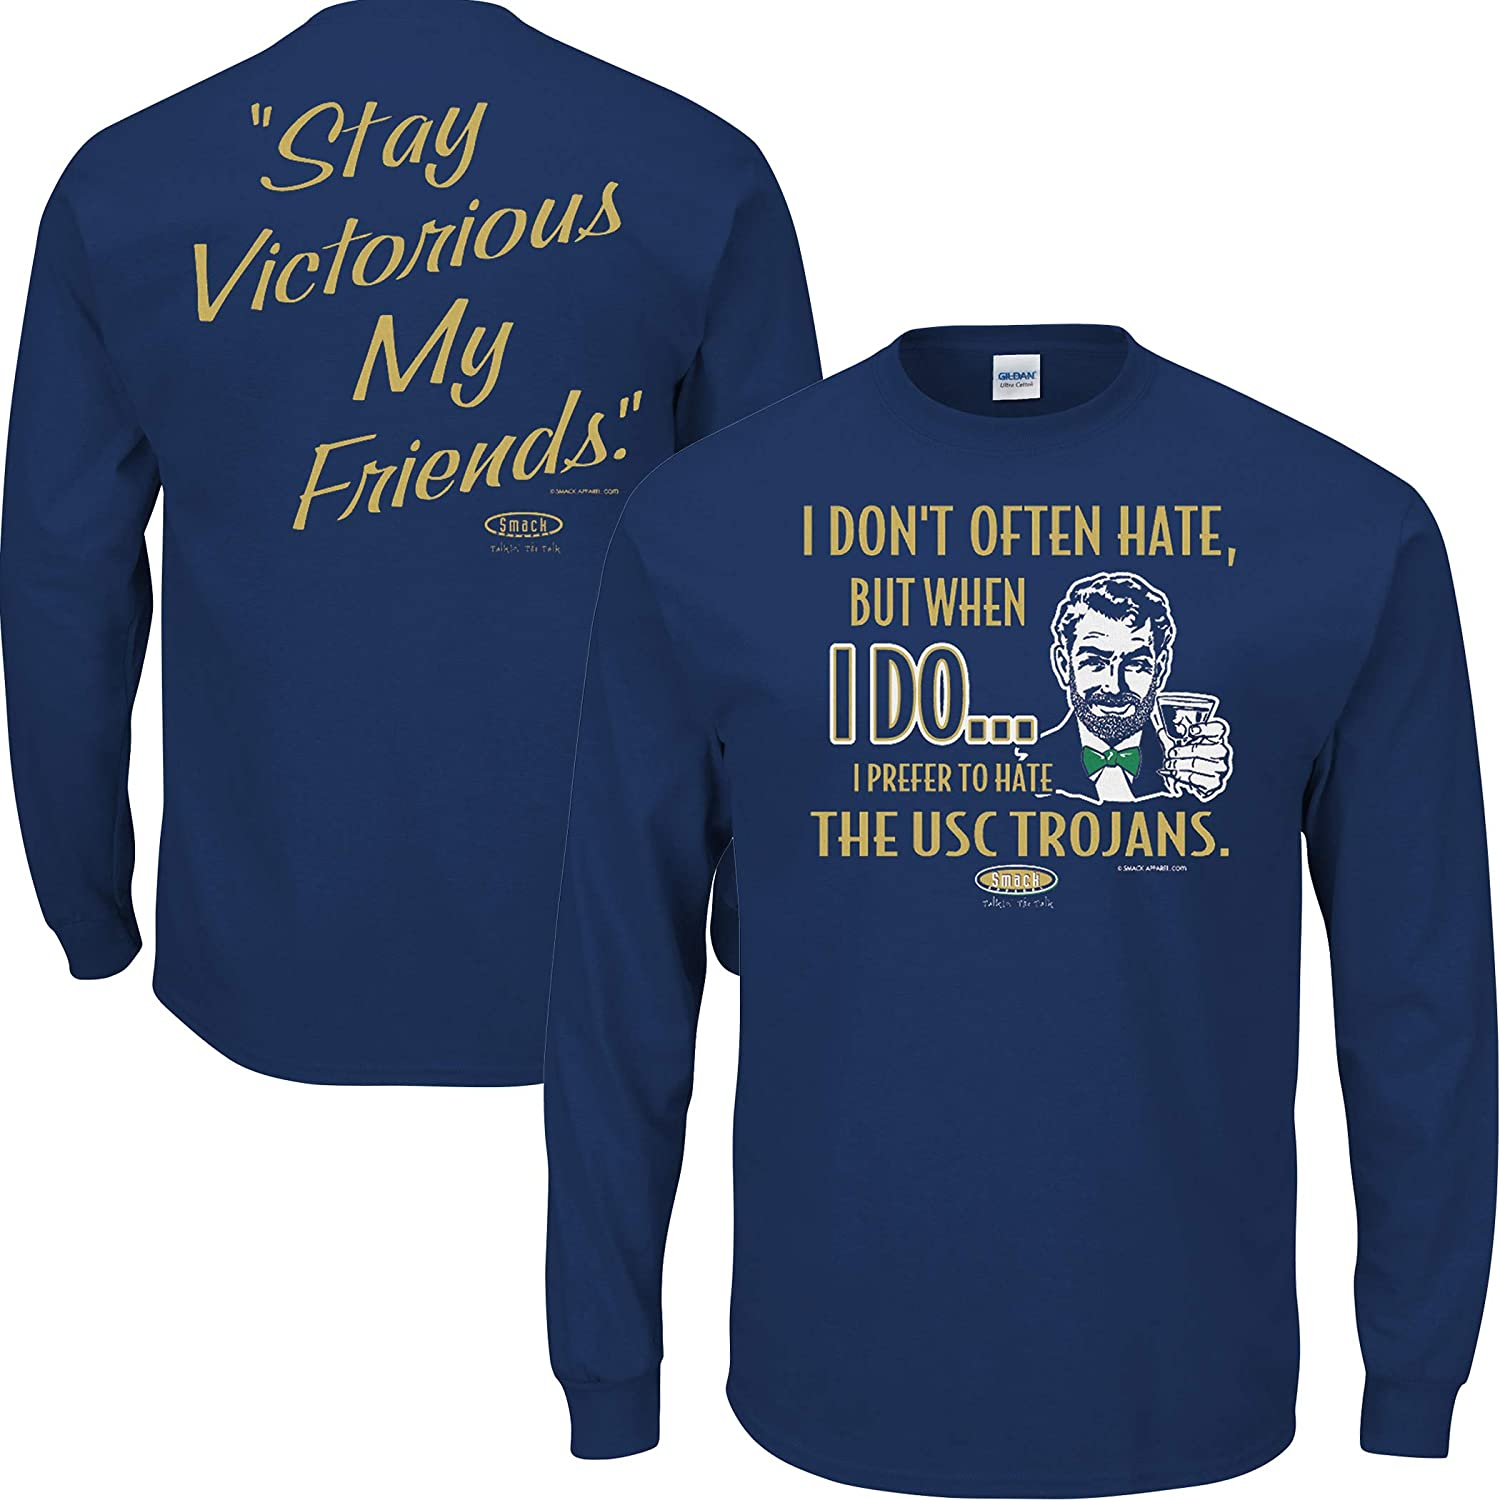 Stay Victorious Smack Apparel Notre Dame Football Fans Anti-USC I Dont Often Hate Sm-5X Navy T-Shirt